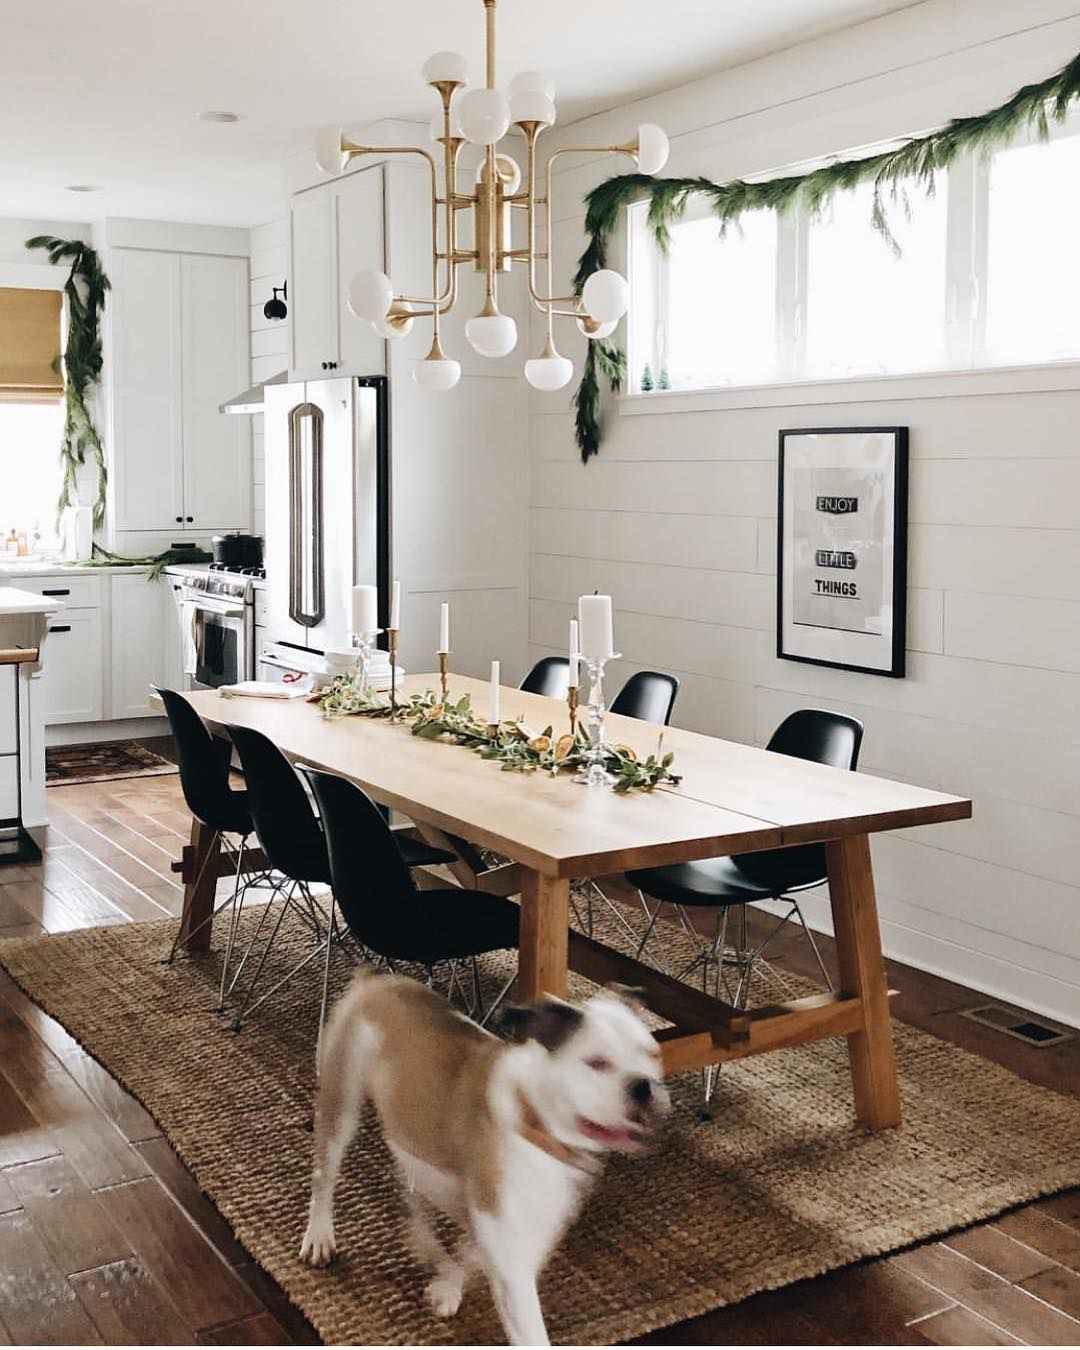 "32 More Stunning Scandinavian Dining Rooms: Mid Century•Boho•Scandinavian On Instagram: """"Own Less"